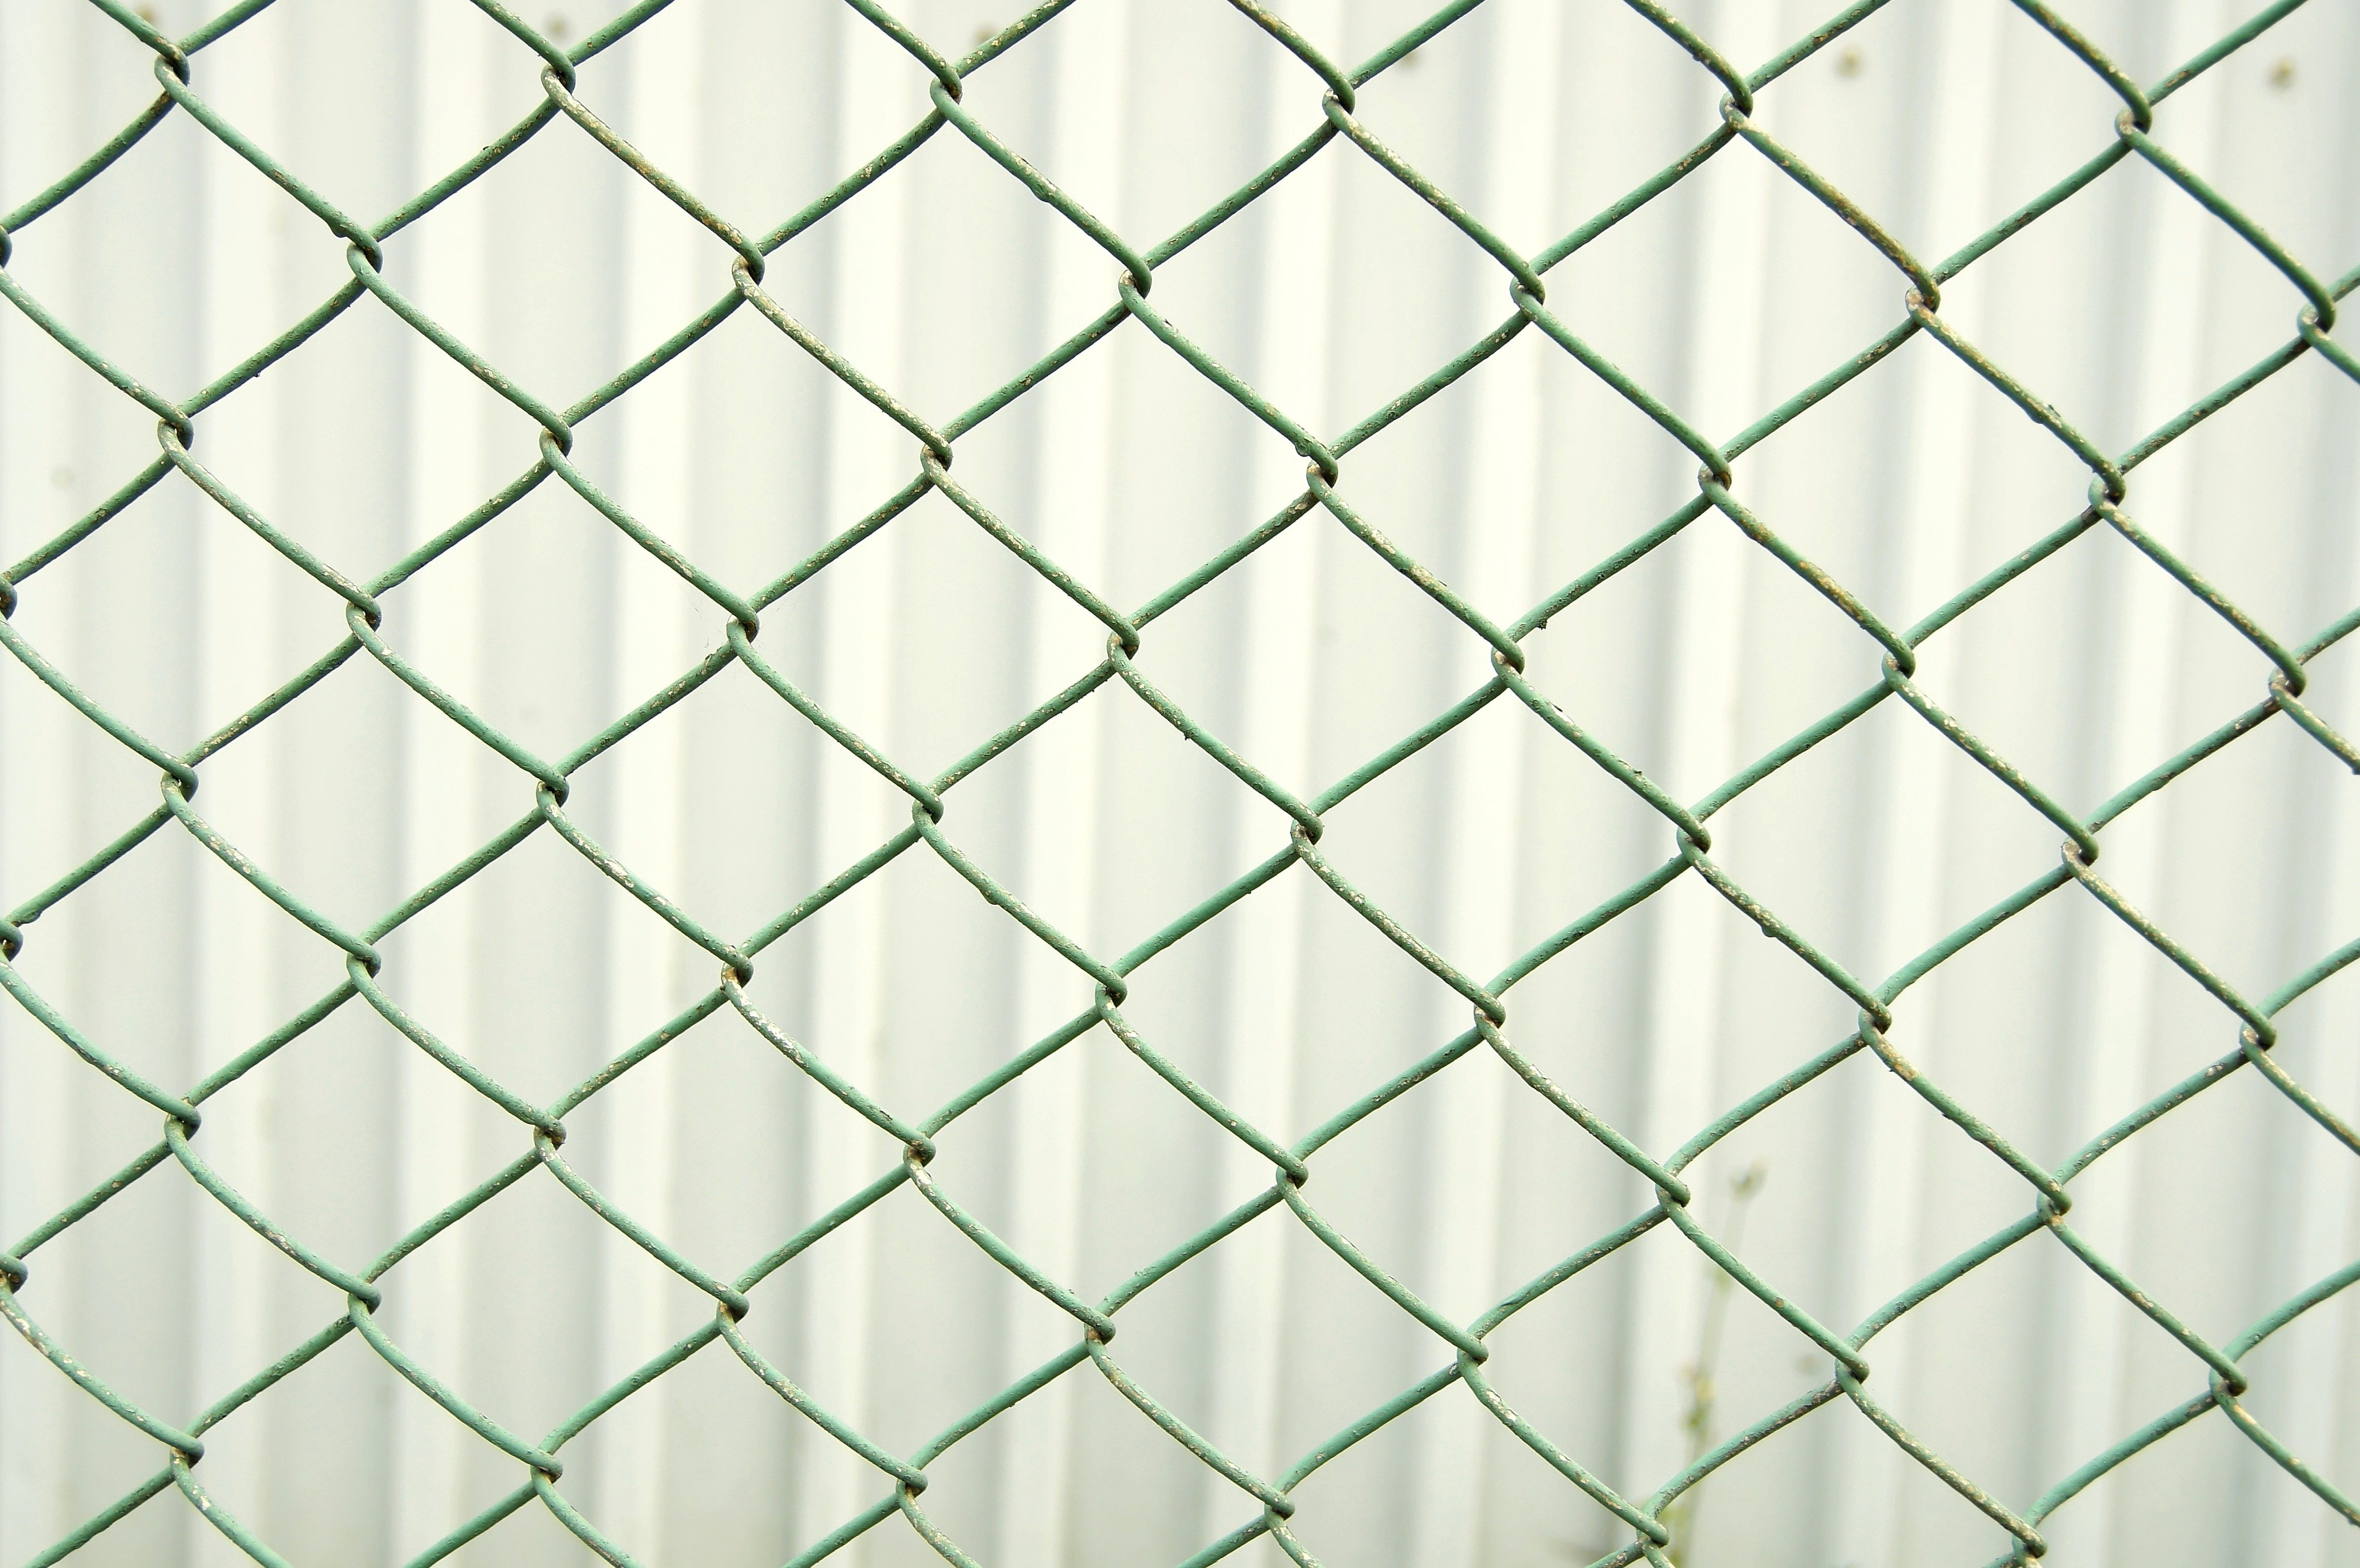 free picture metal fence wires steel rhomboid texture steel